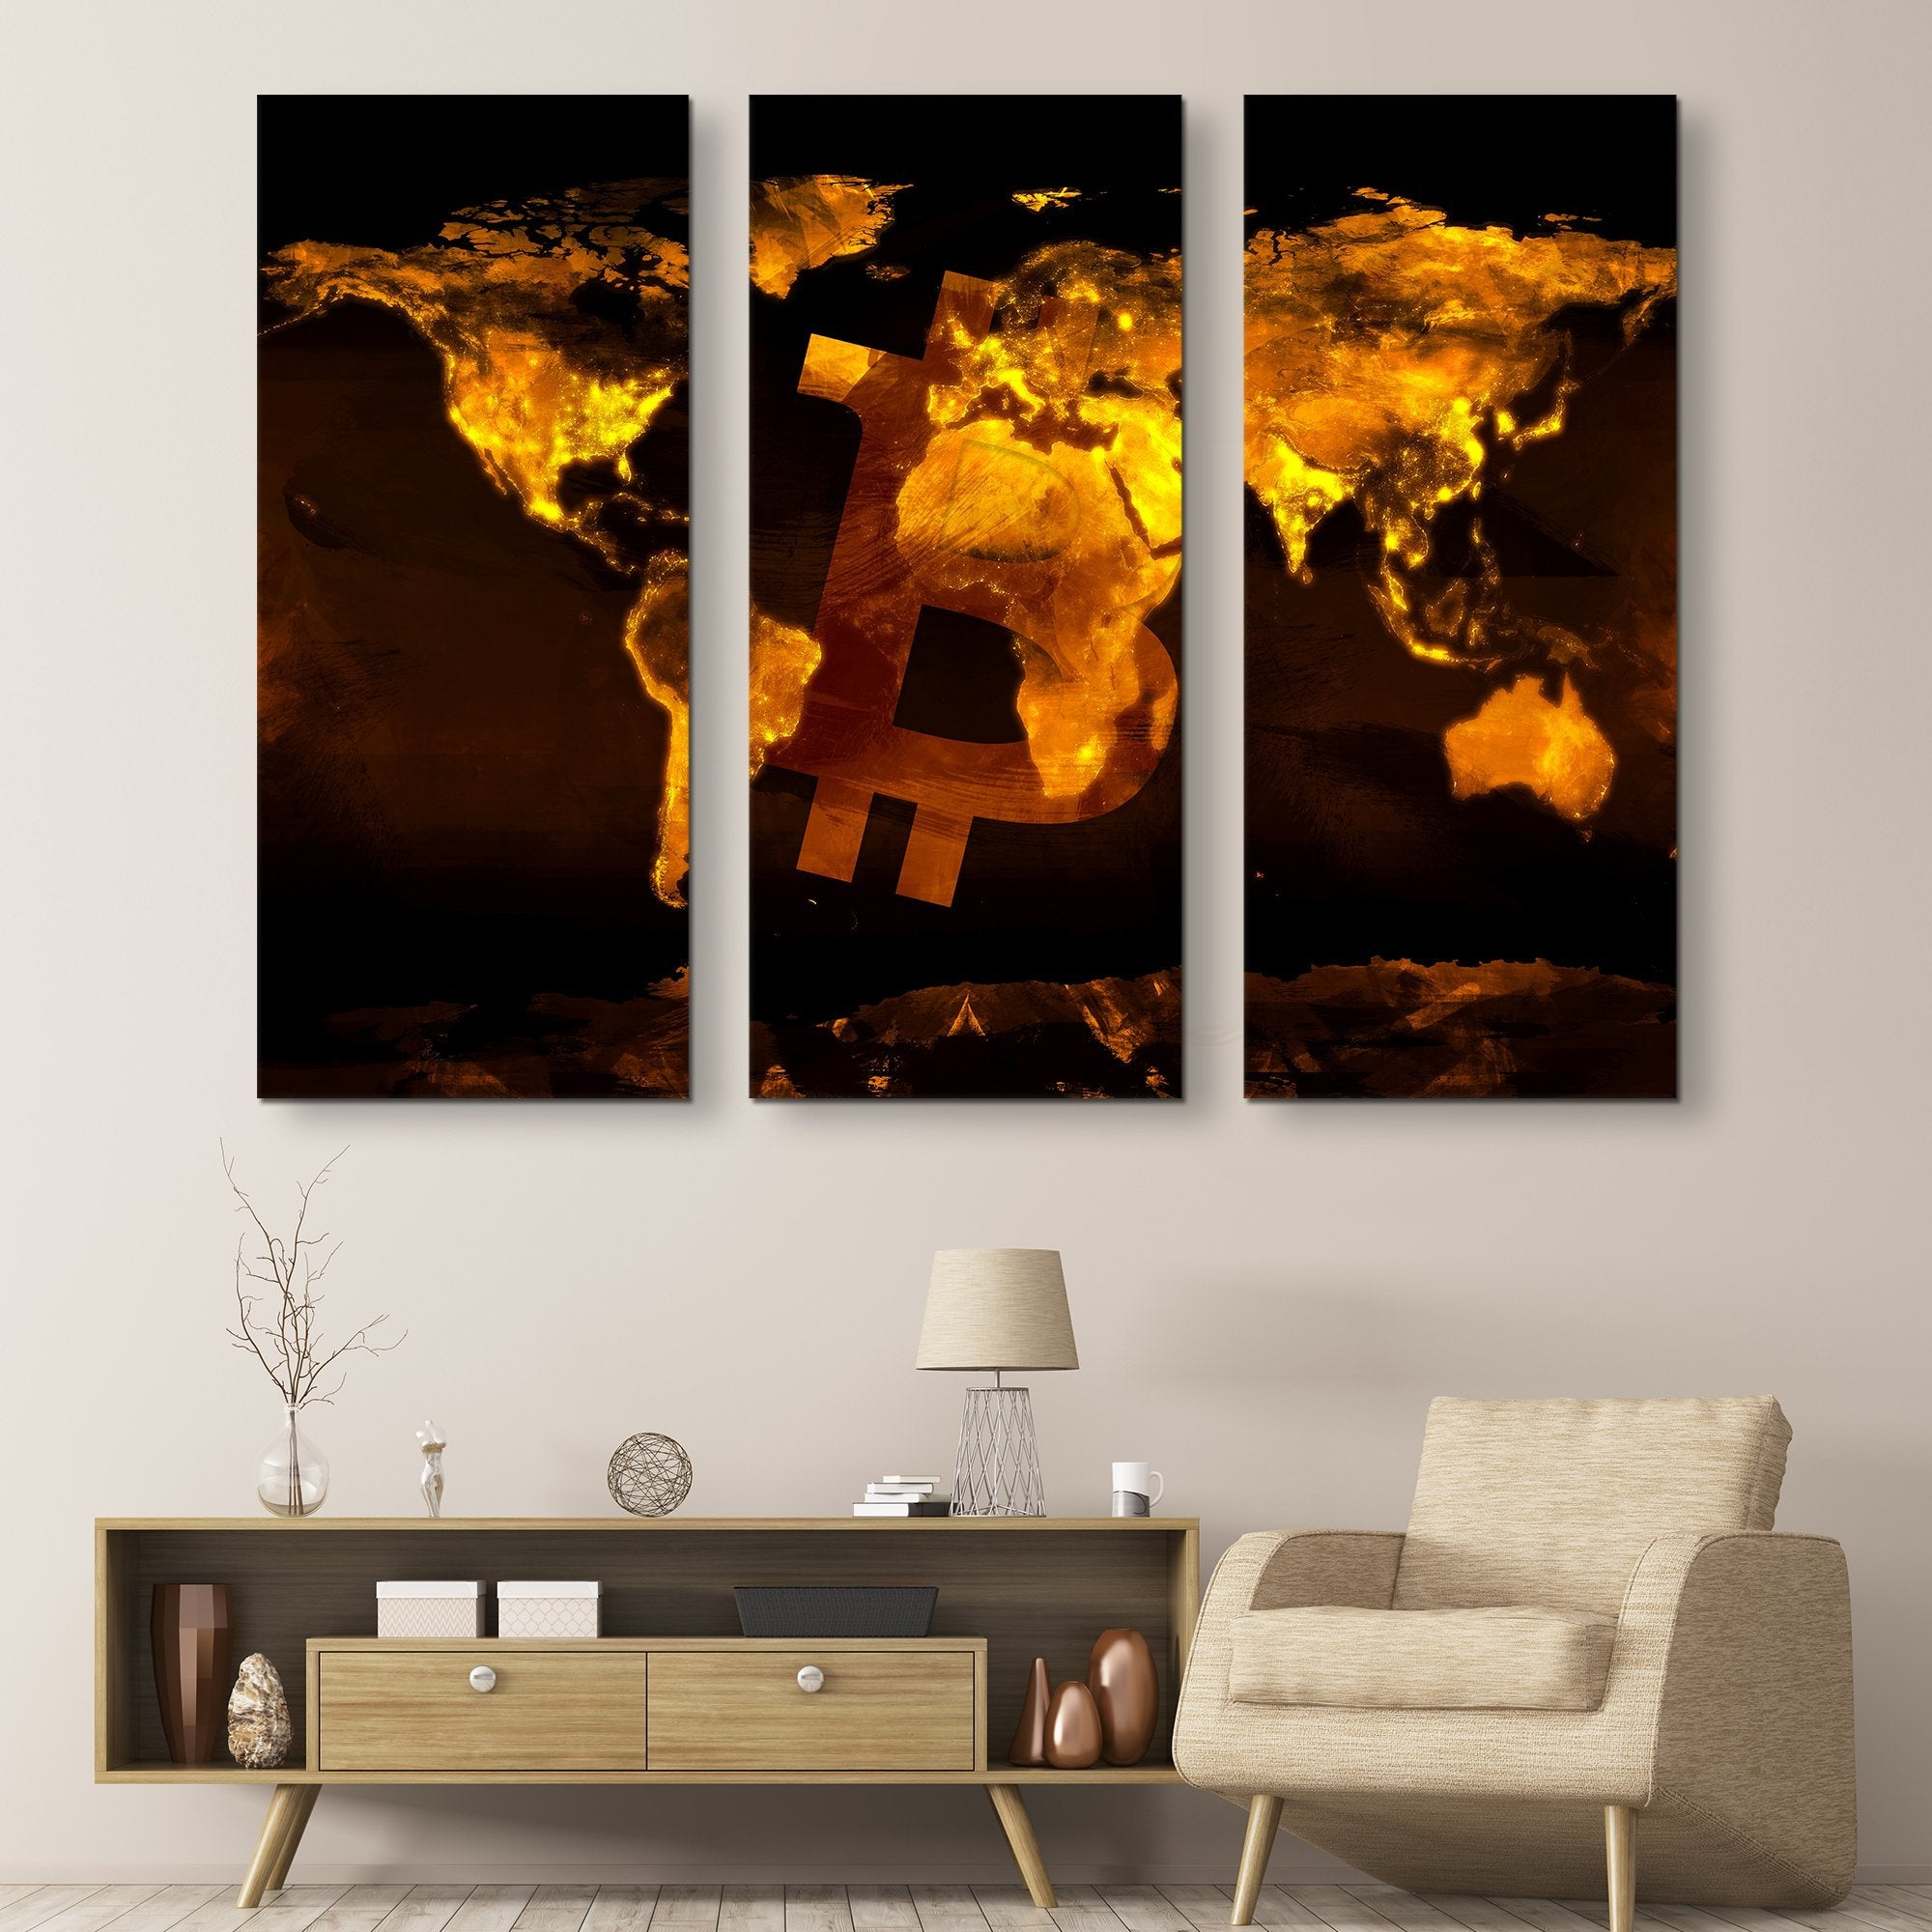 3 piece Bitcoin Black Marble Series wall art